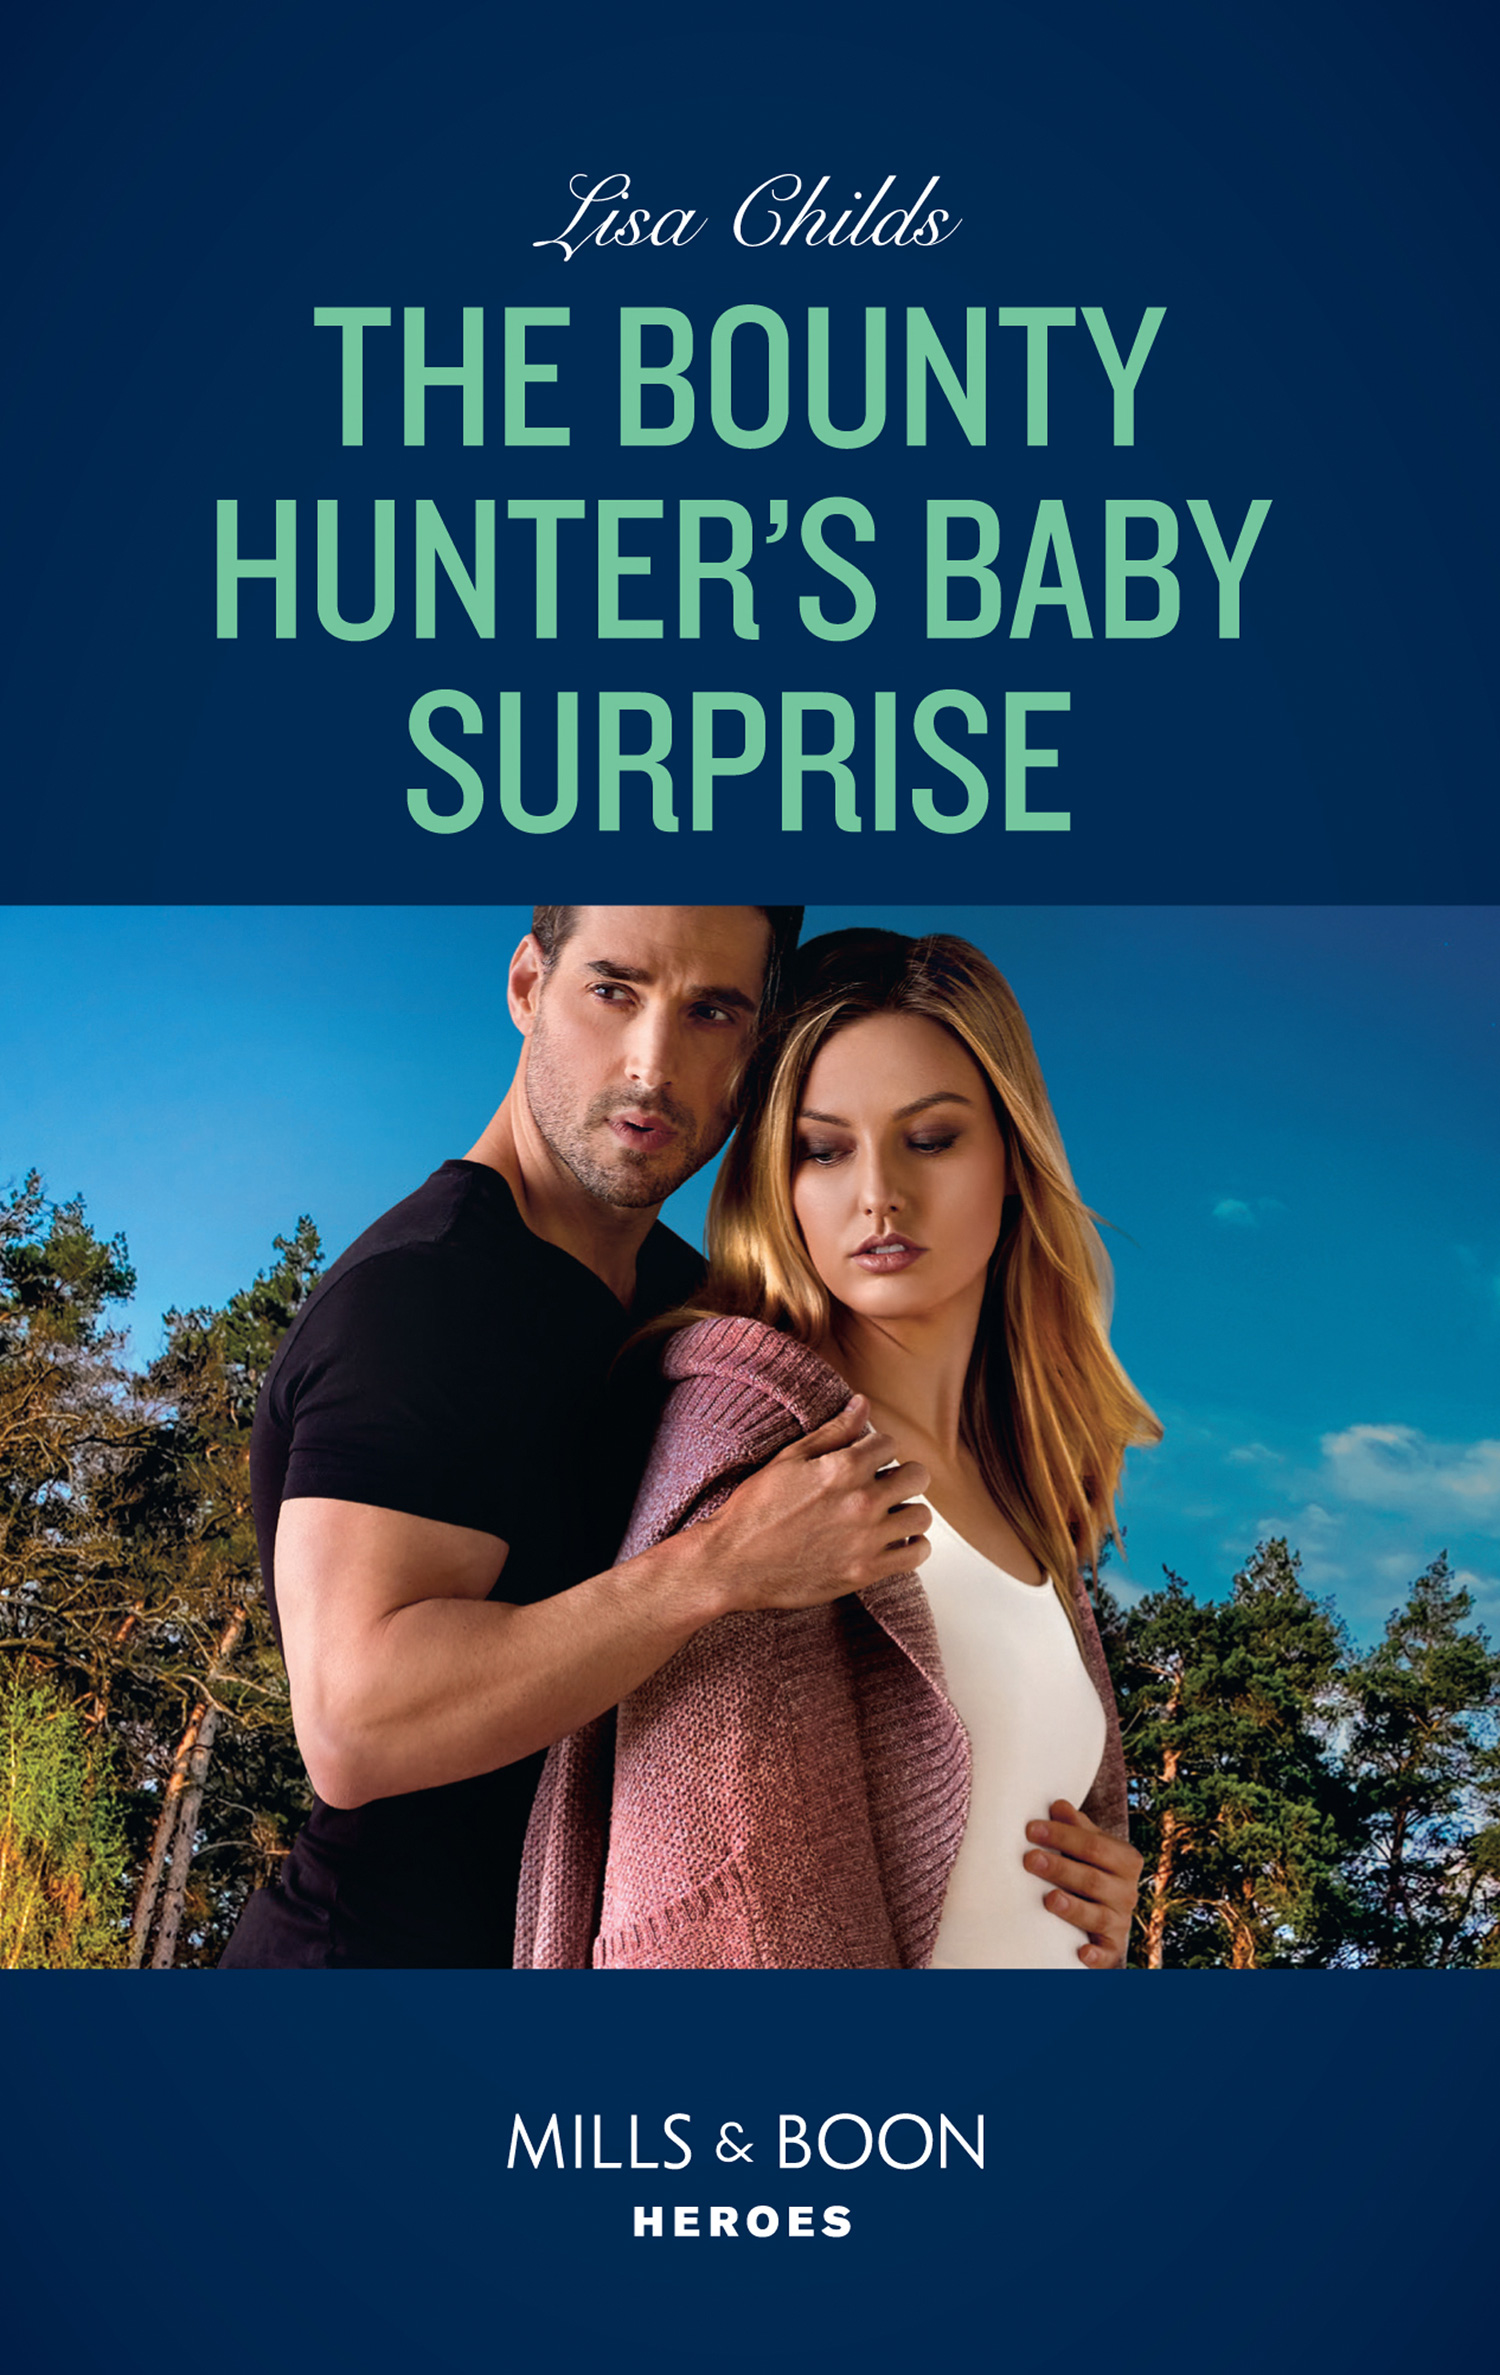 The Bounty Hunter's Baby Surprise